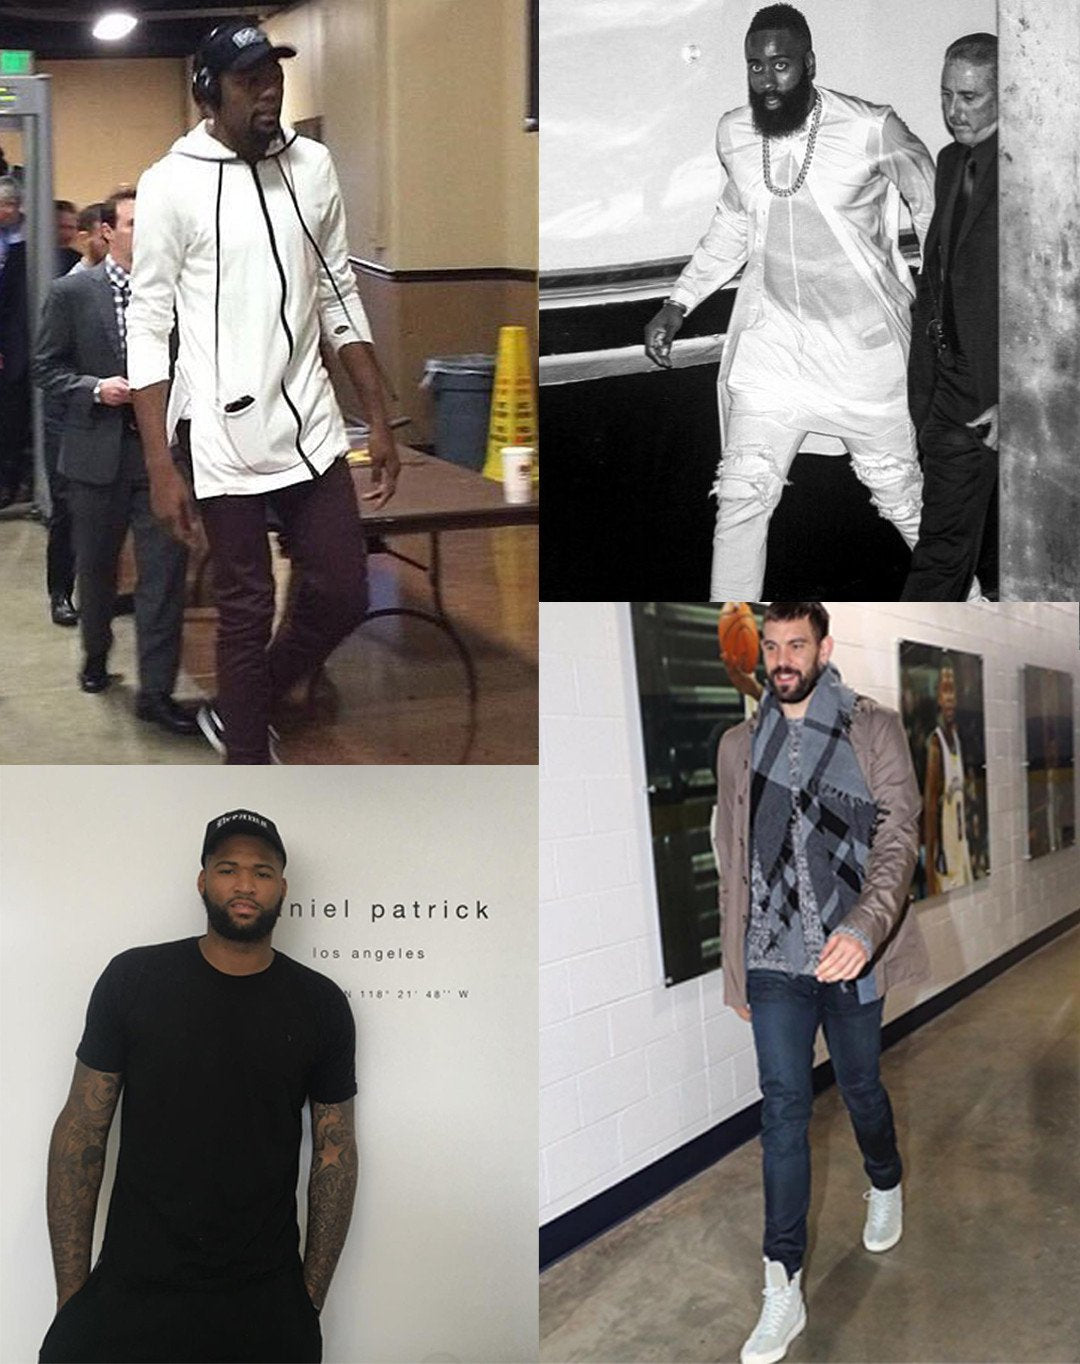 Kevin Durant in a daniel patrick roaming hood ii, James Harden in knomadik long tee, DeMarcus Cousins in knomadik at dp hq, Marc Gasol in sage high top roamers